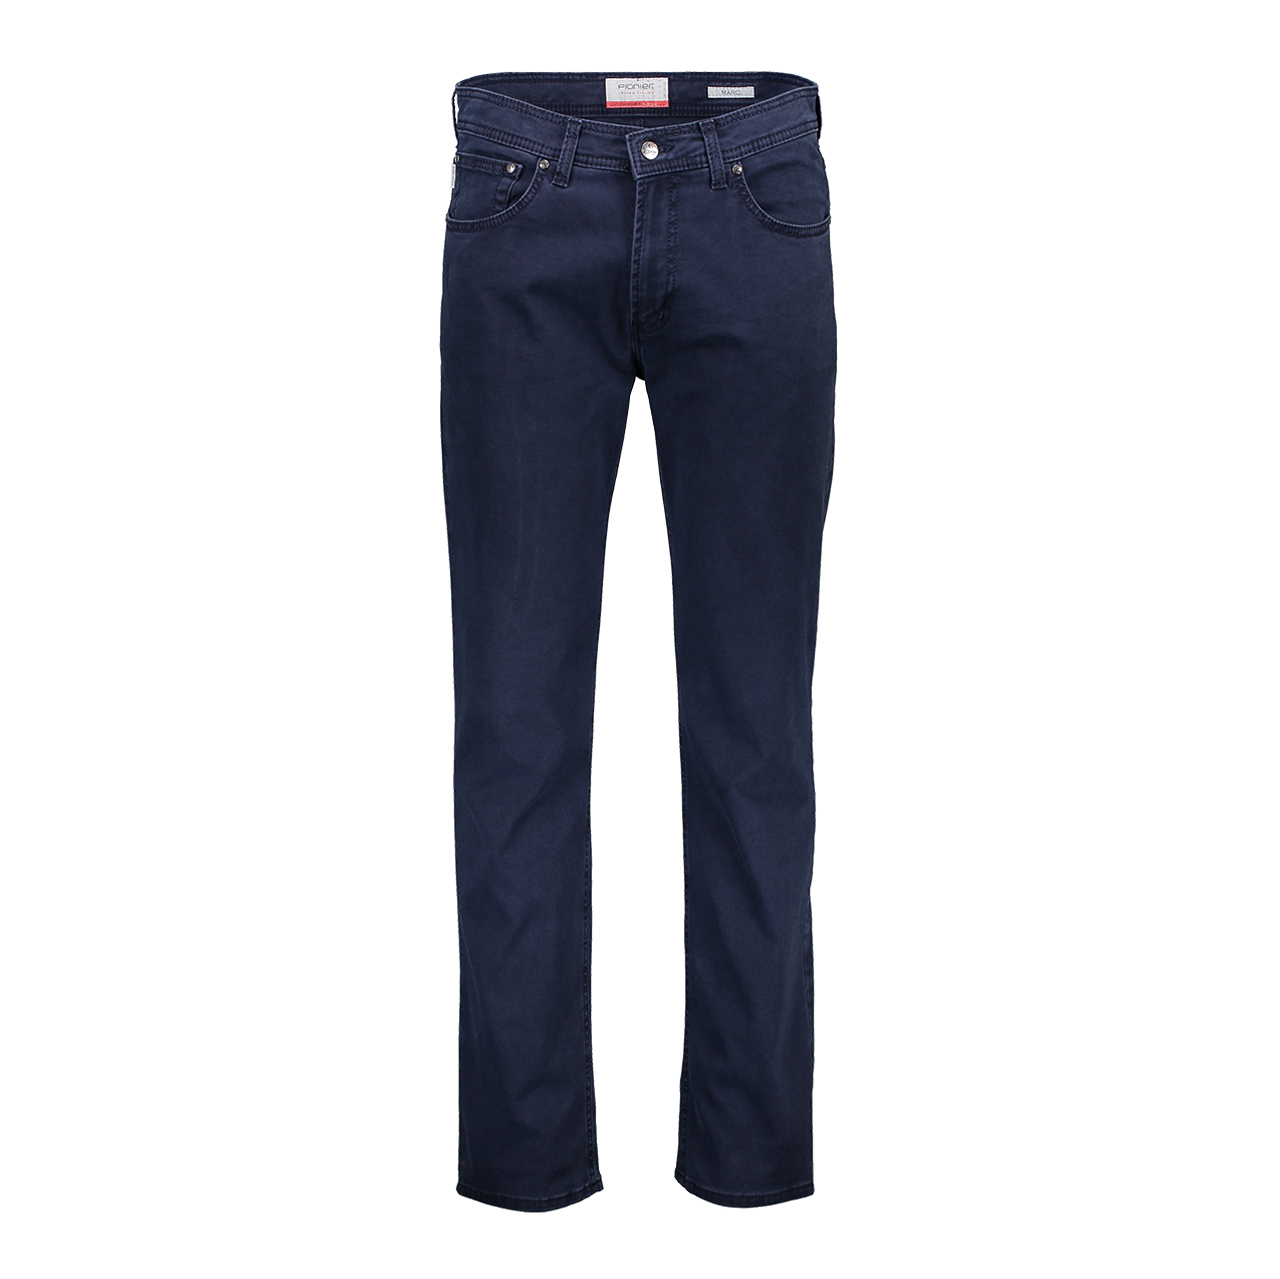 Pionier grote maat casual jeans Koningsblauw stretch model Thomas